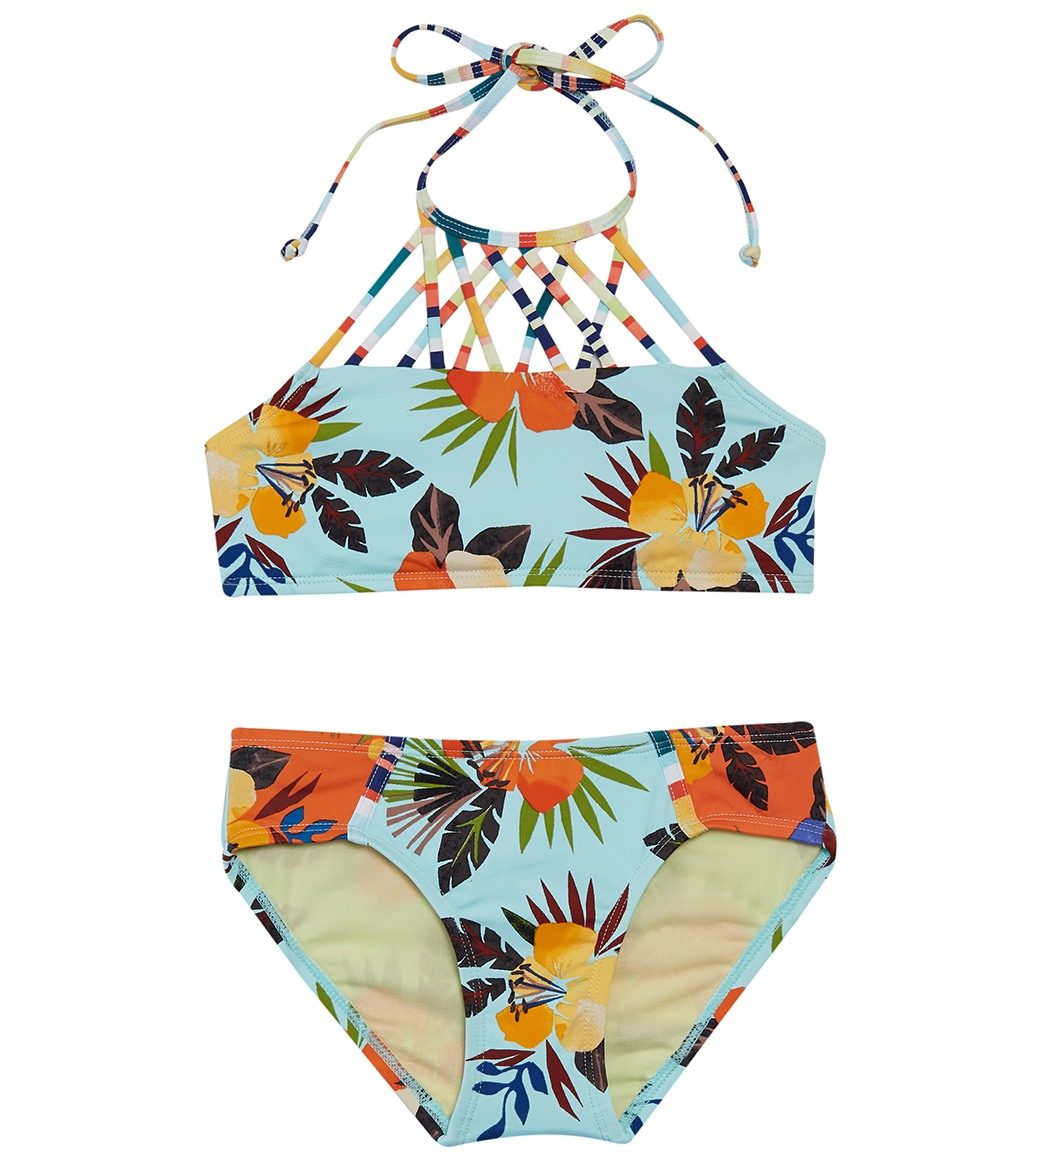 ac28fe81de4dfa Hobie Girls  North Shore Thing Strappy High Neck   Boycut Hipster Bikini  Set (Big Kid) at SwimOutlet.com